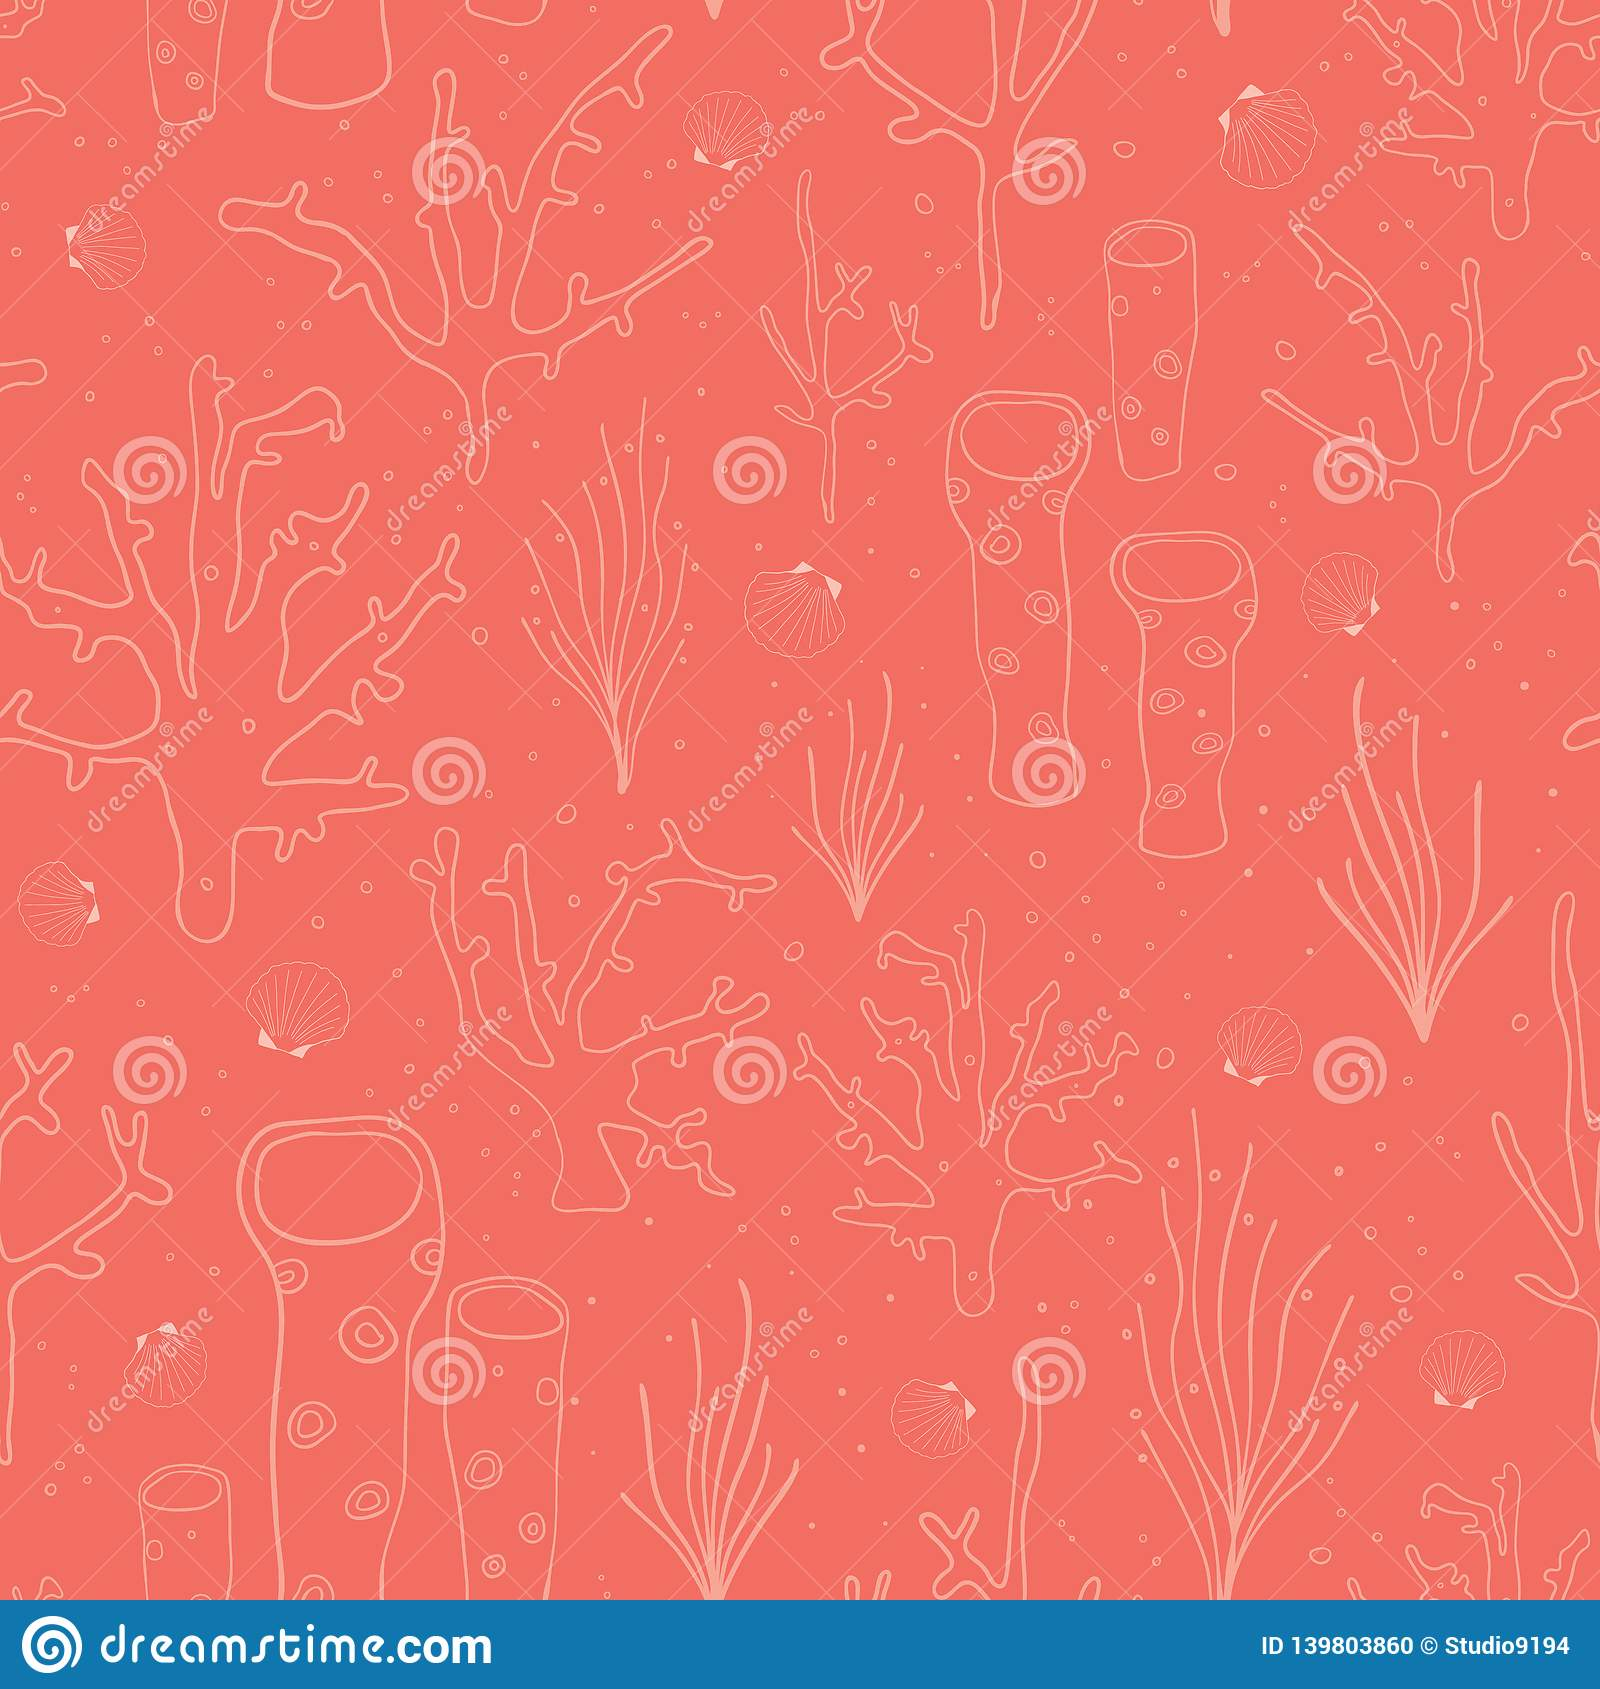 Seamless vector coral reef background. Underwater pattern with corals, sea plants, seaweed, sponge, clams, shells. Hand drawn